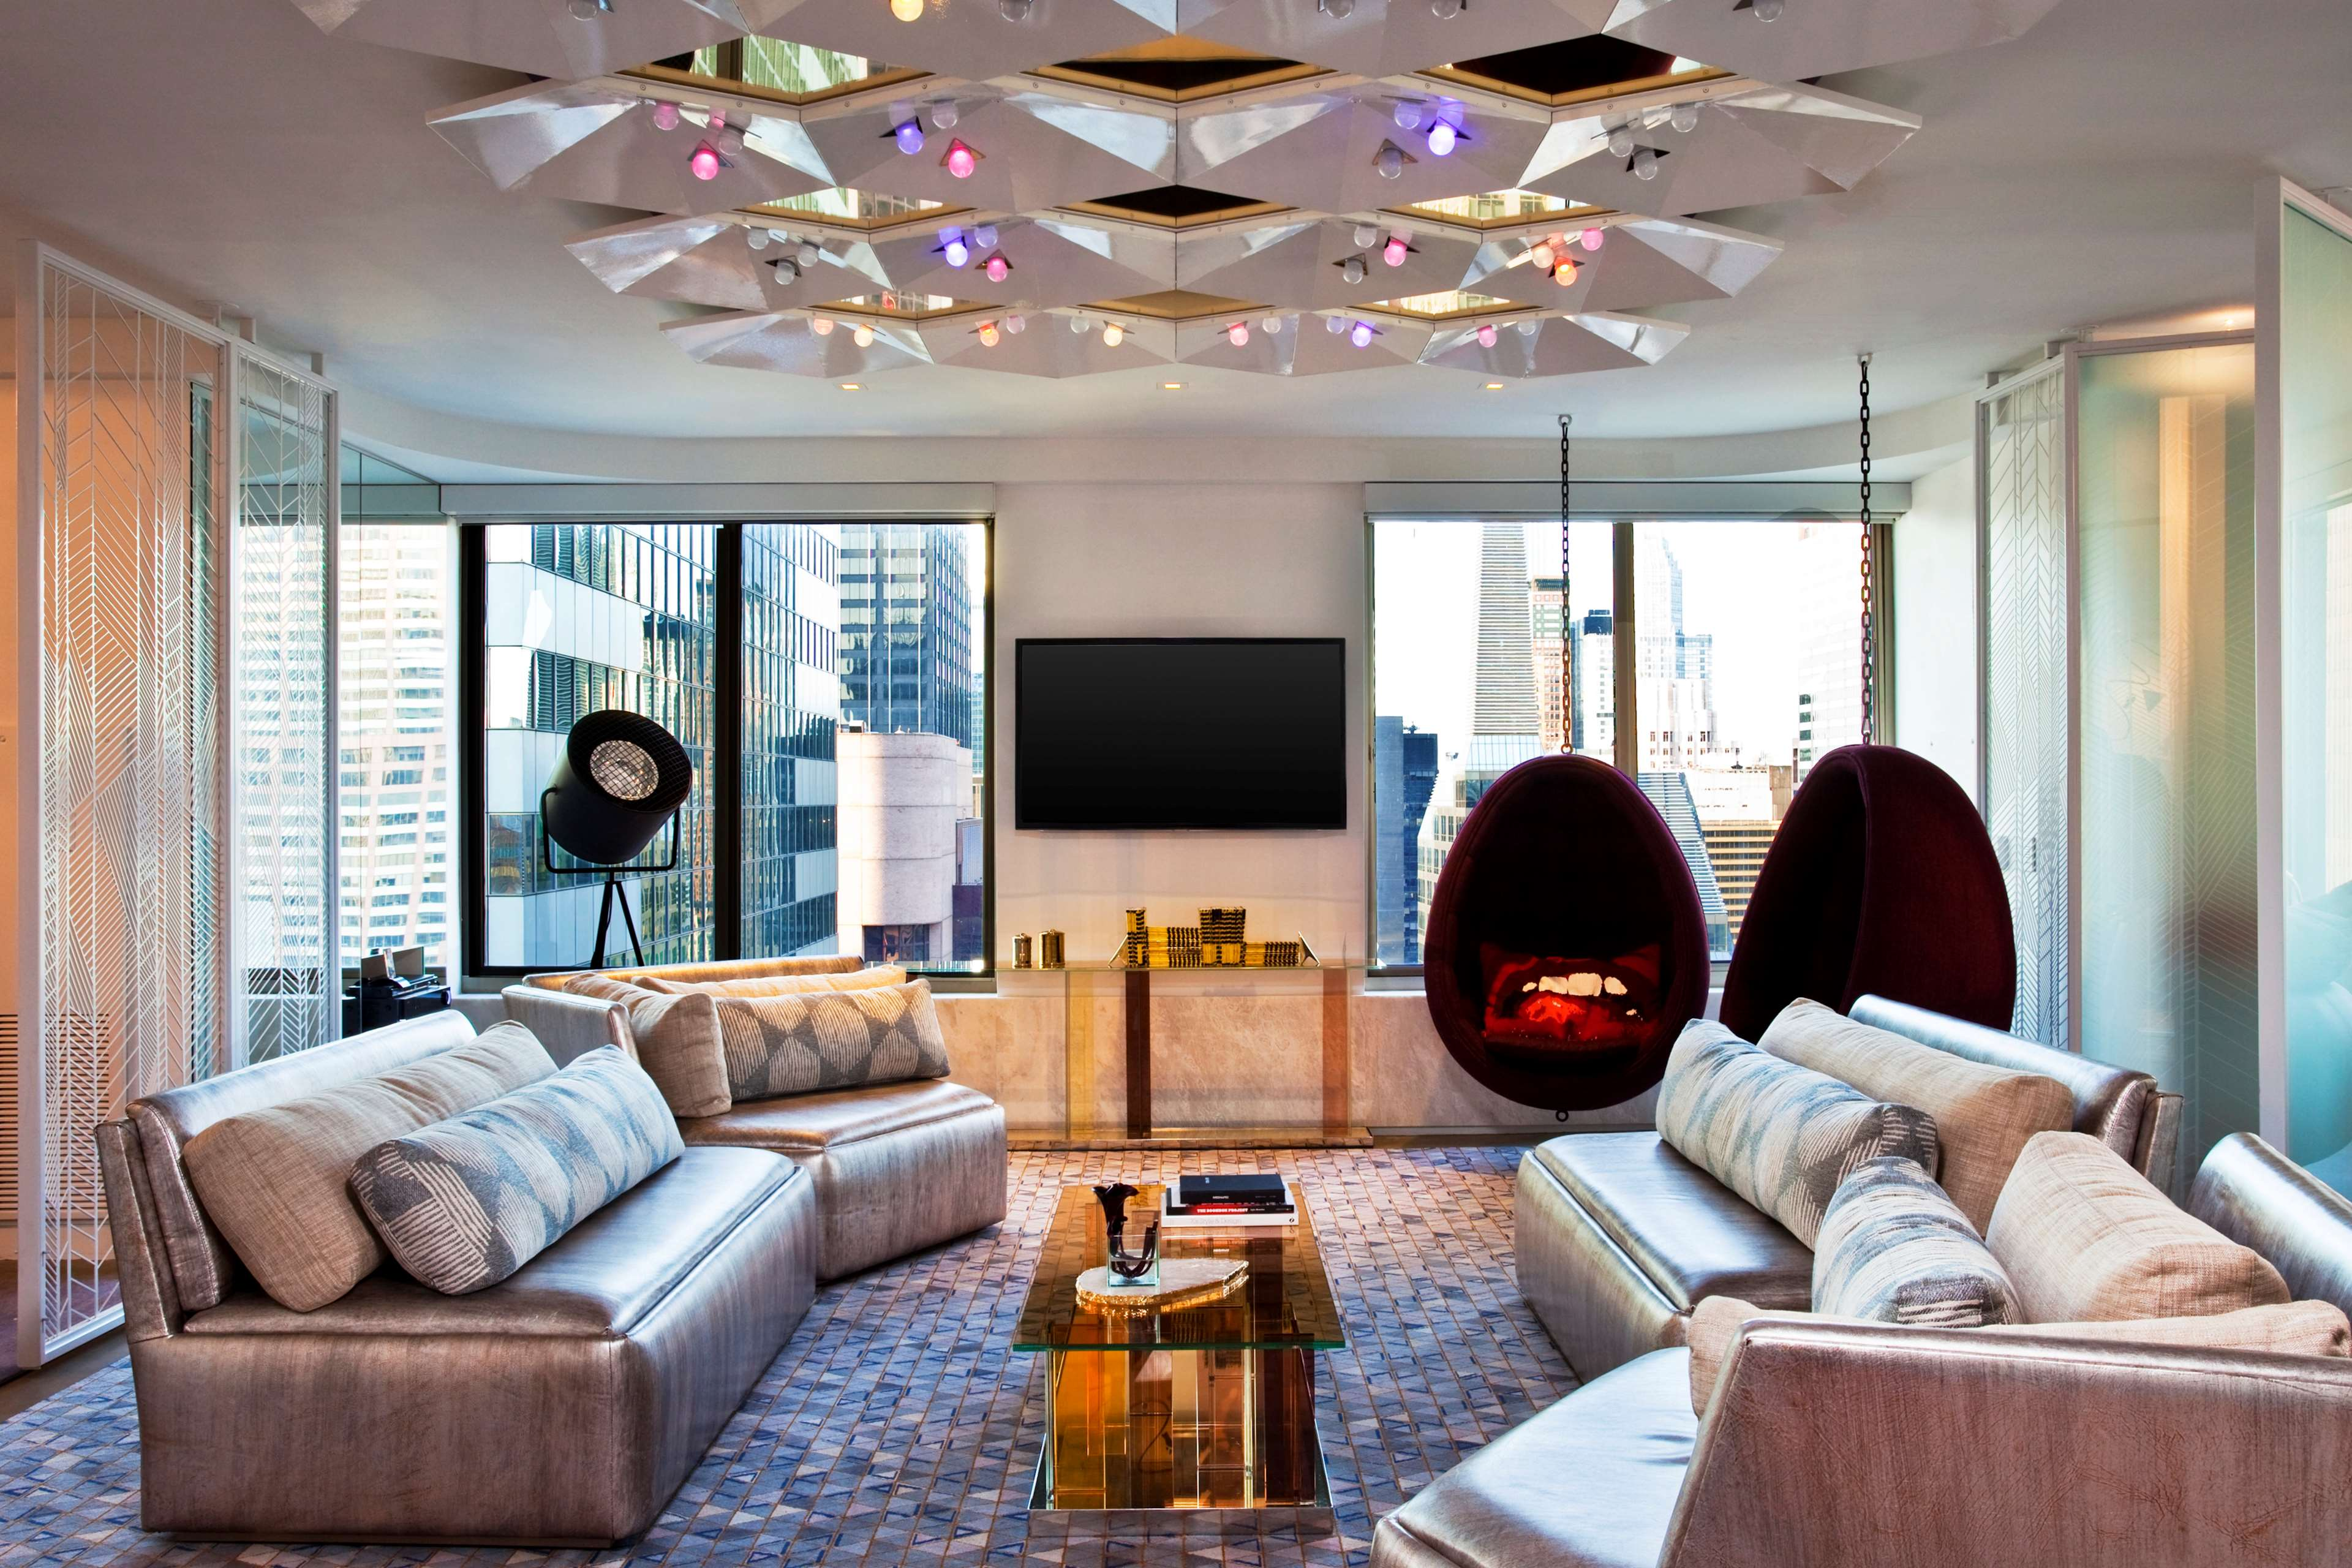 Living Room 1567 Broadway w new york - times square 1567 broadway new york, ny w hotels